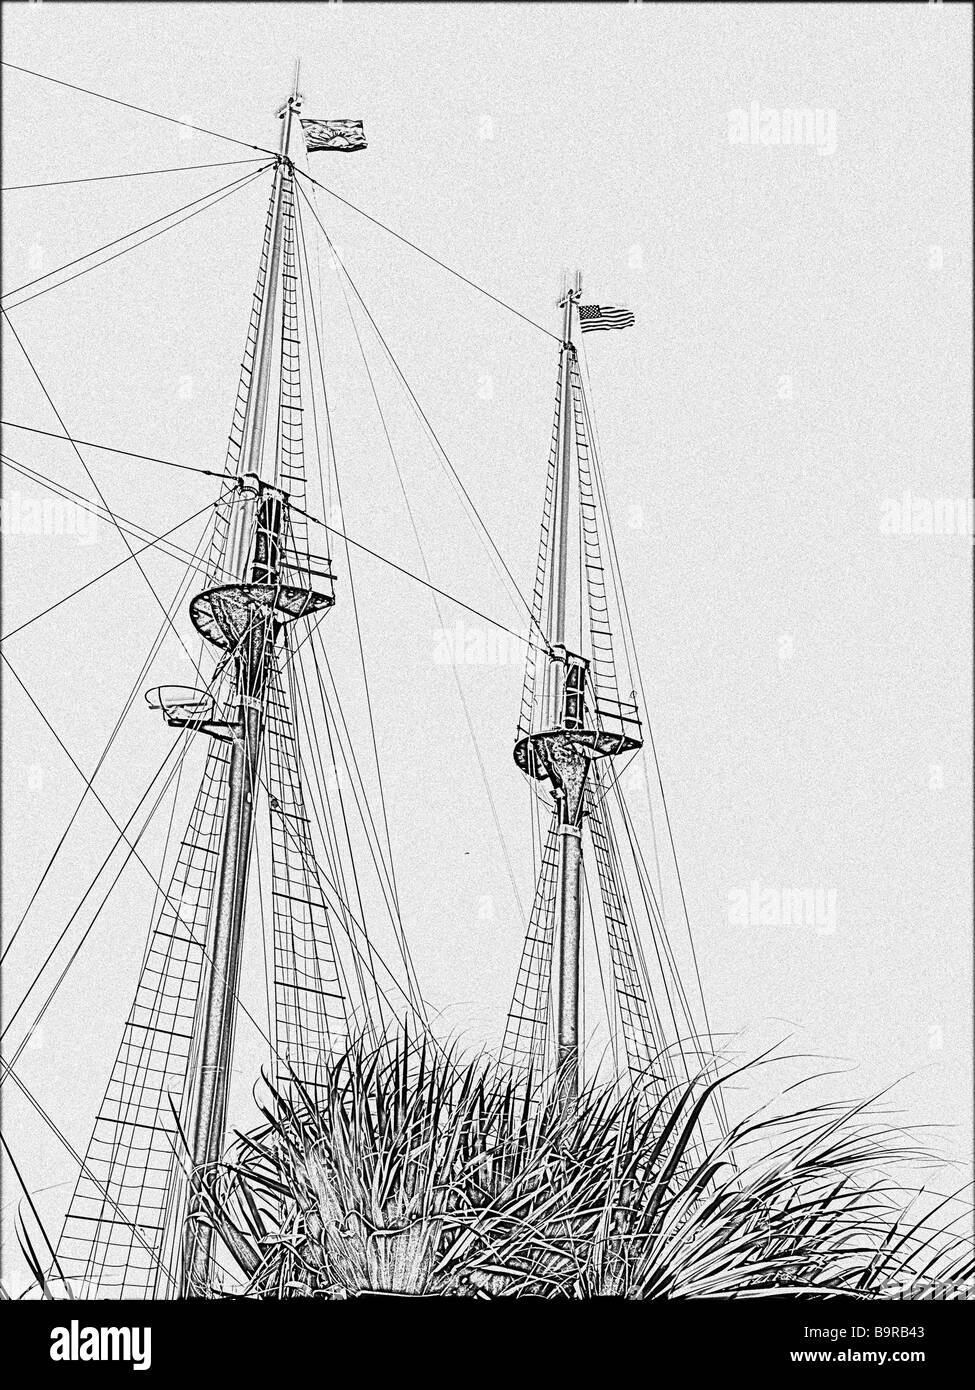 two masts of a three masted tall ship with palm tree in foreground using drawing technique from Photoshop - Stock Image